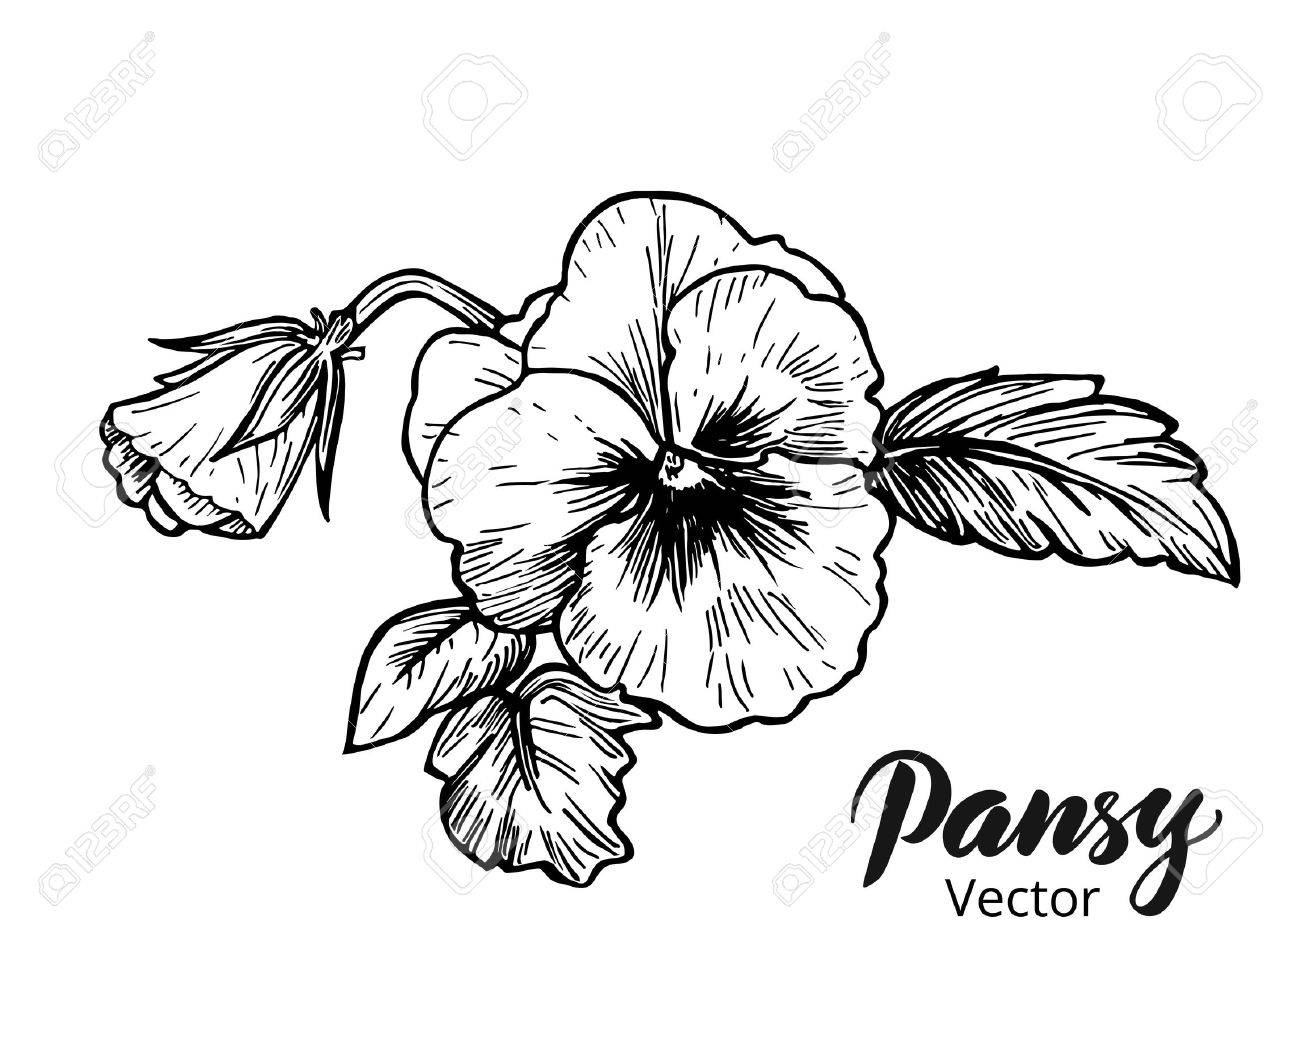 1300x1040 Hand Drawn Pansy Flowers. Vintage Style Vector Illustration